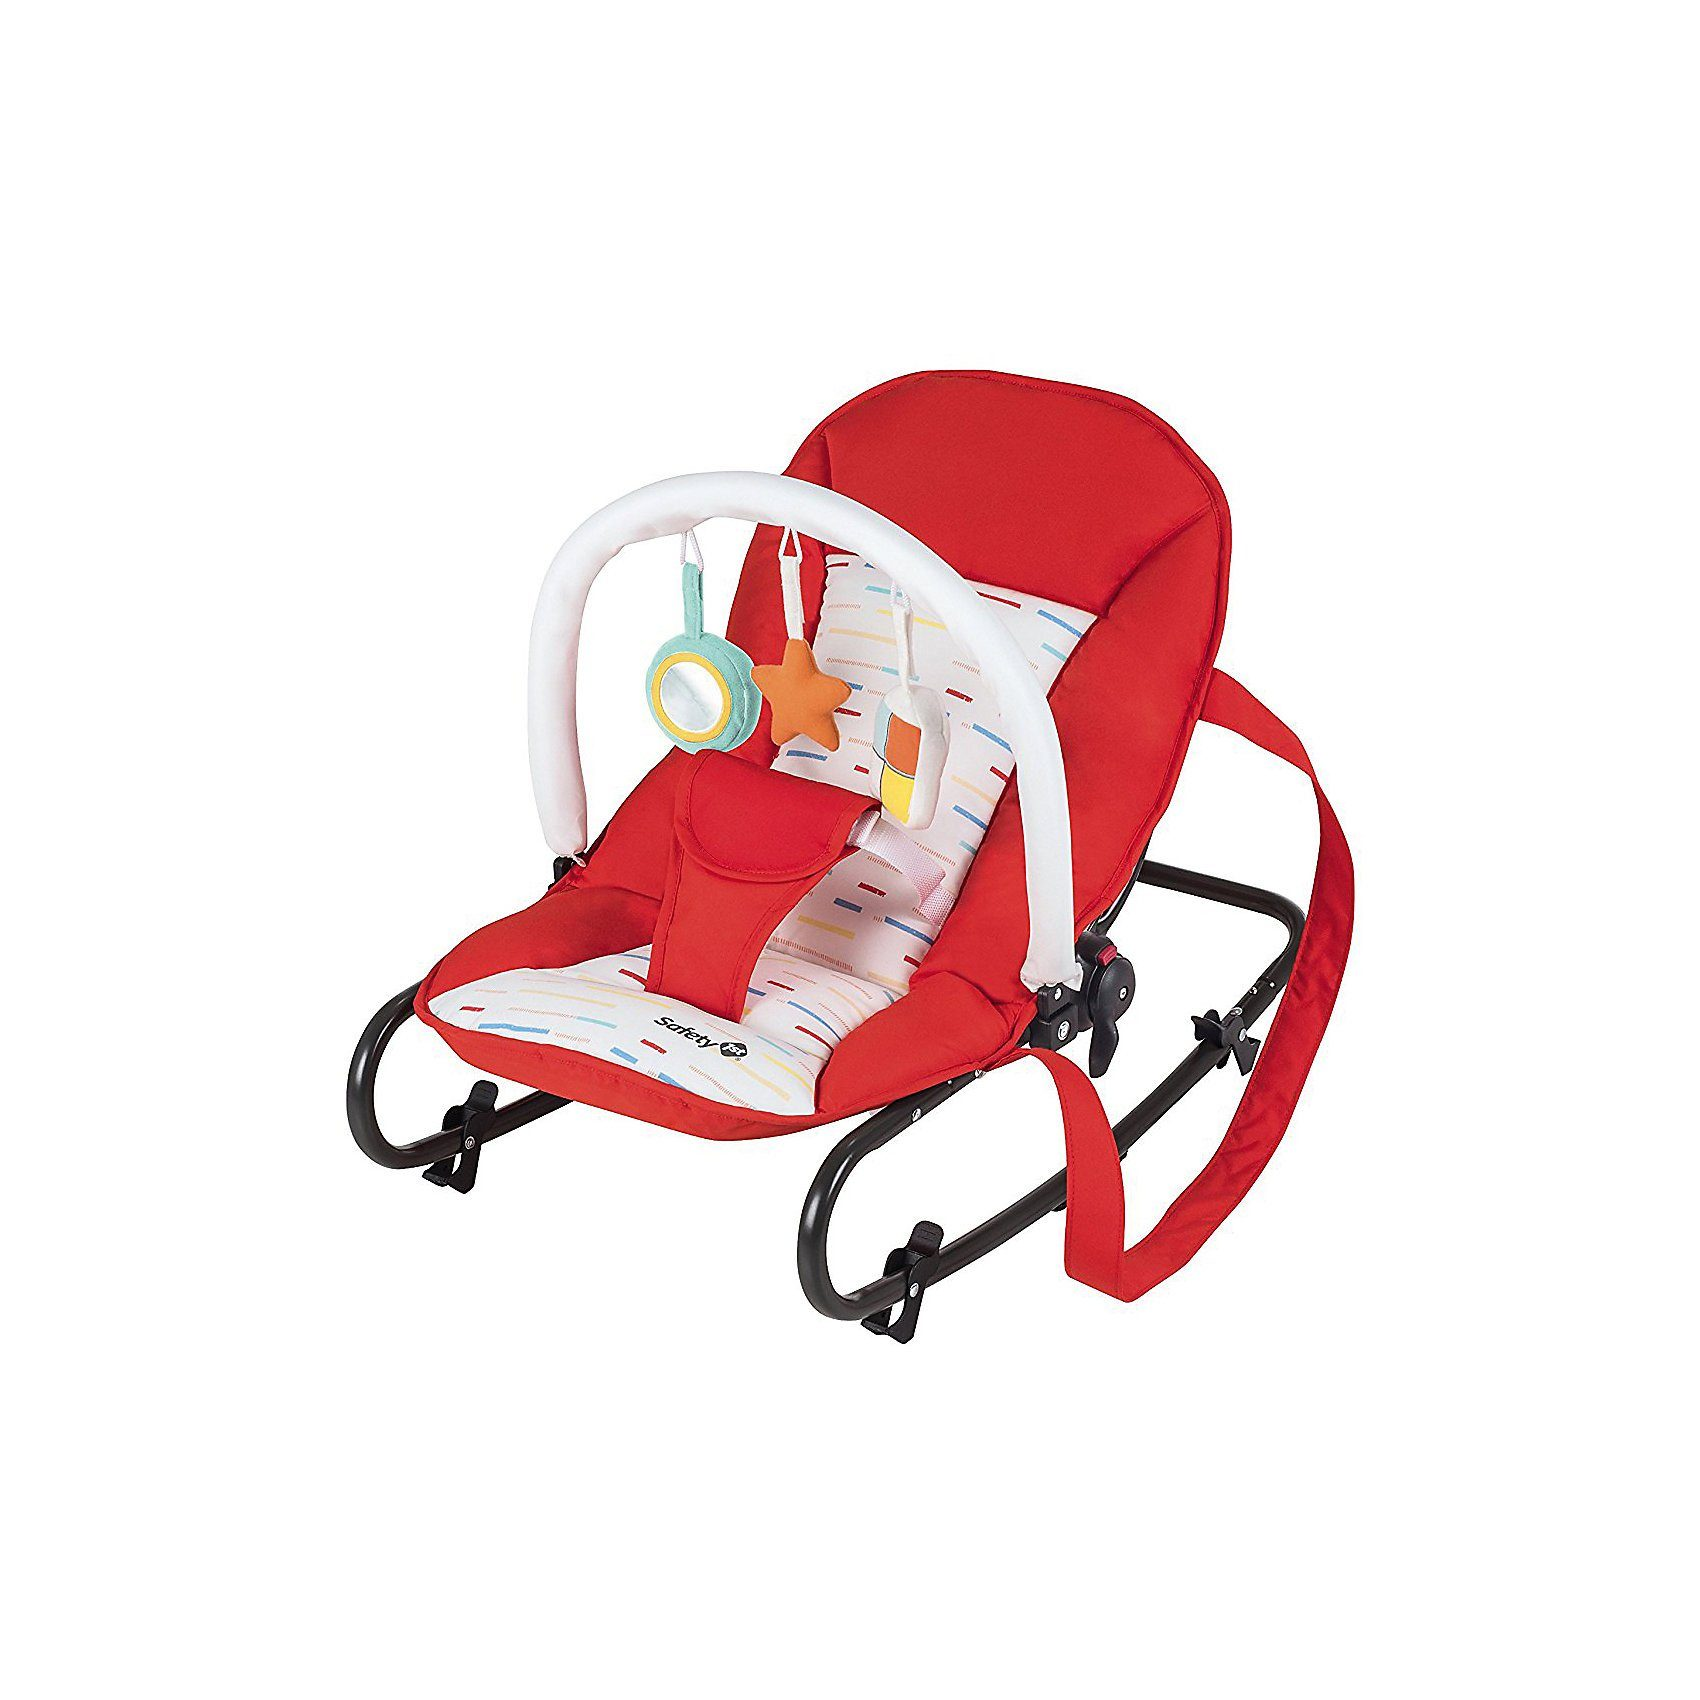 Safety 1st Wippe Koala, Red Lines